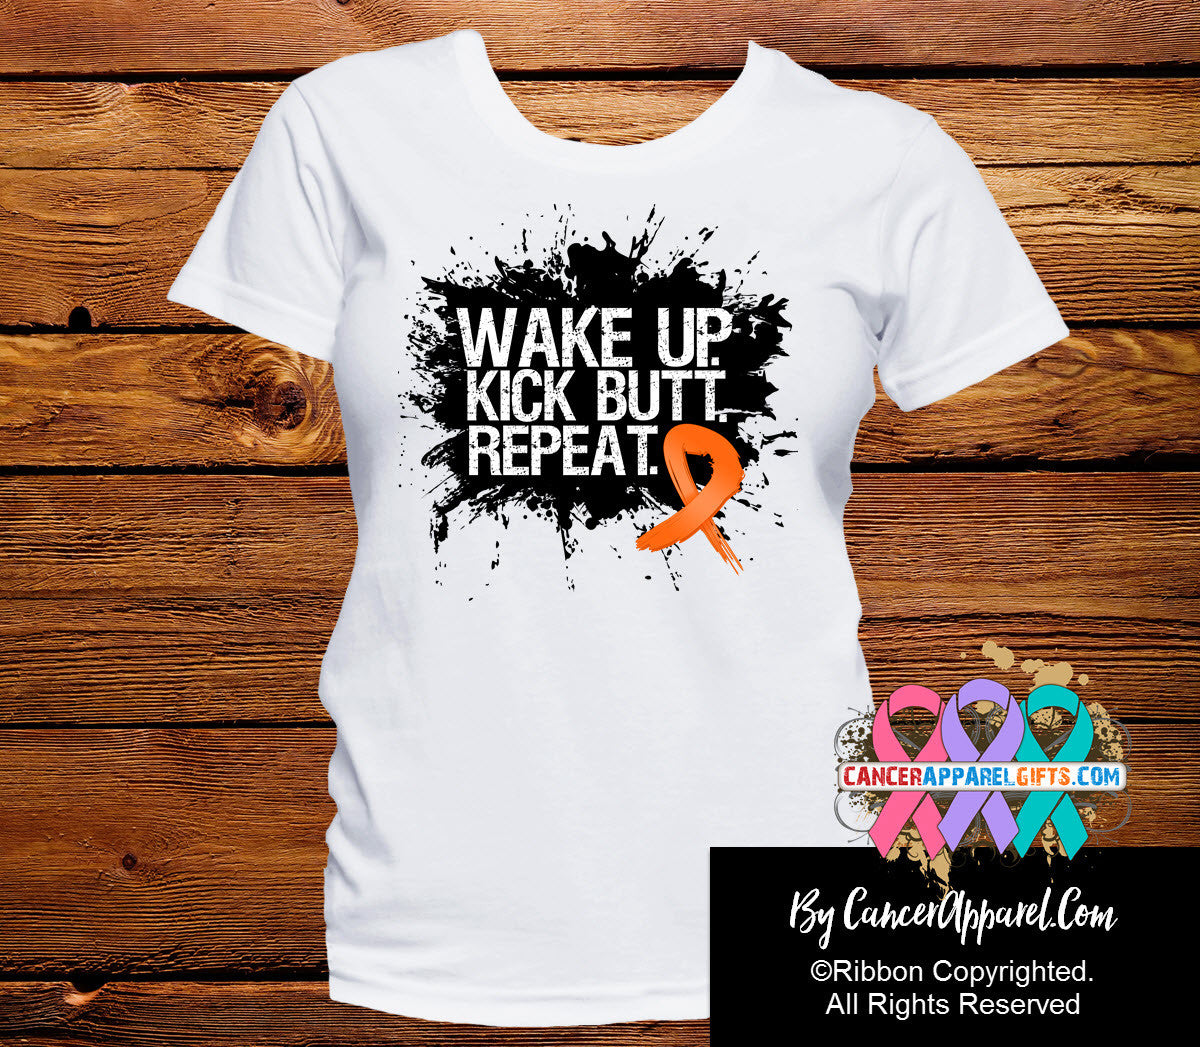 Leukemia Shirts Wake Up Kick Butt and Repeat